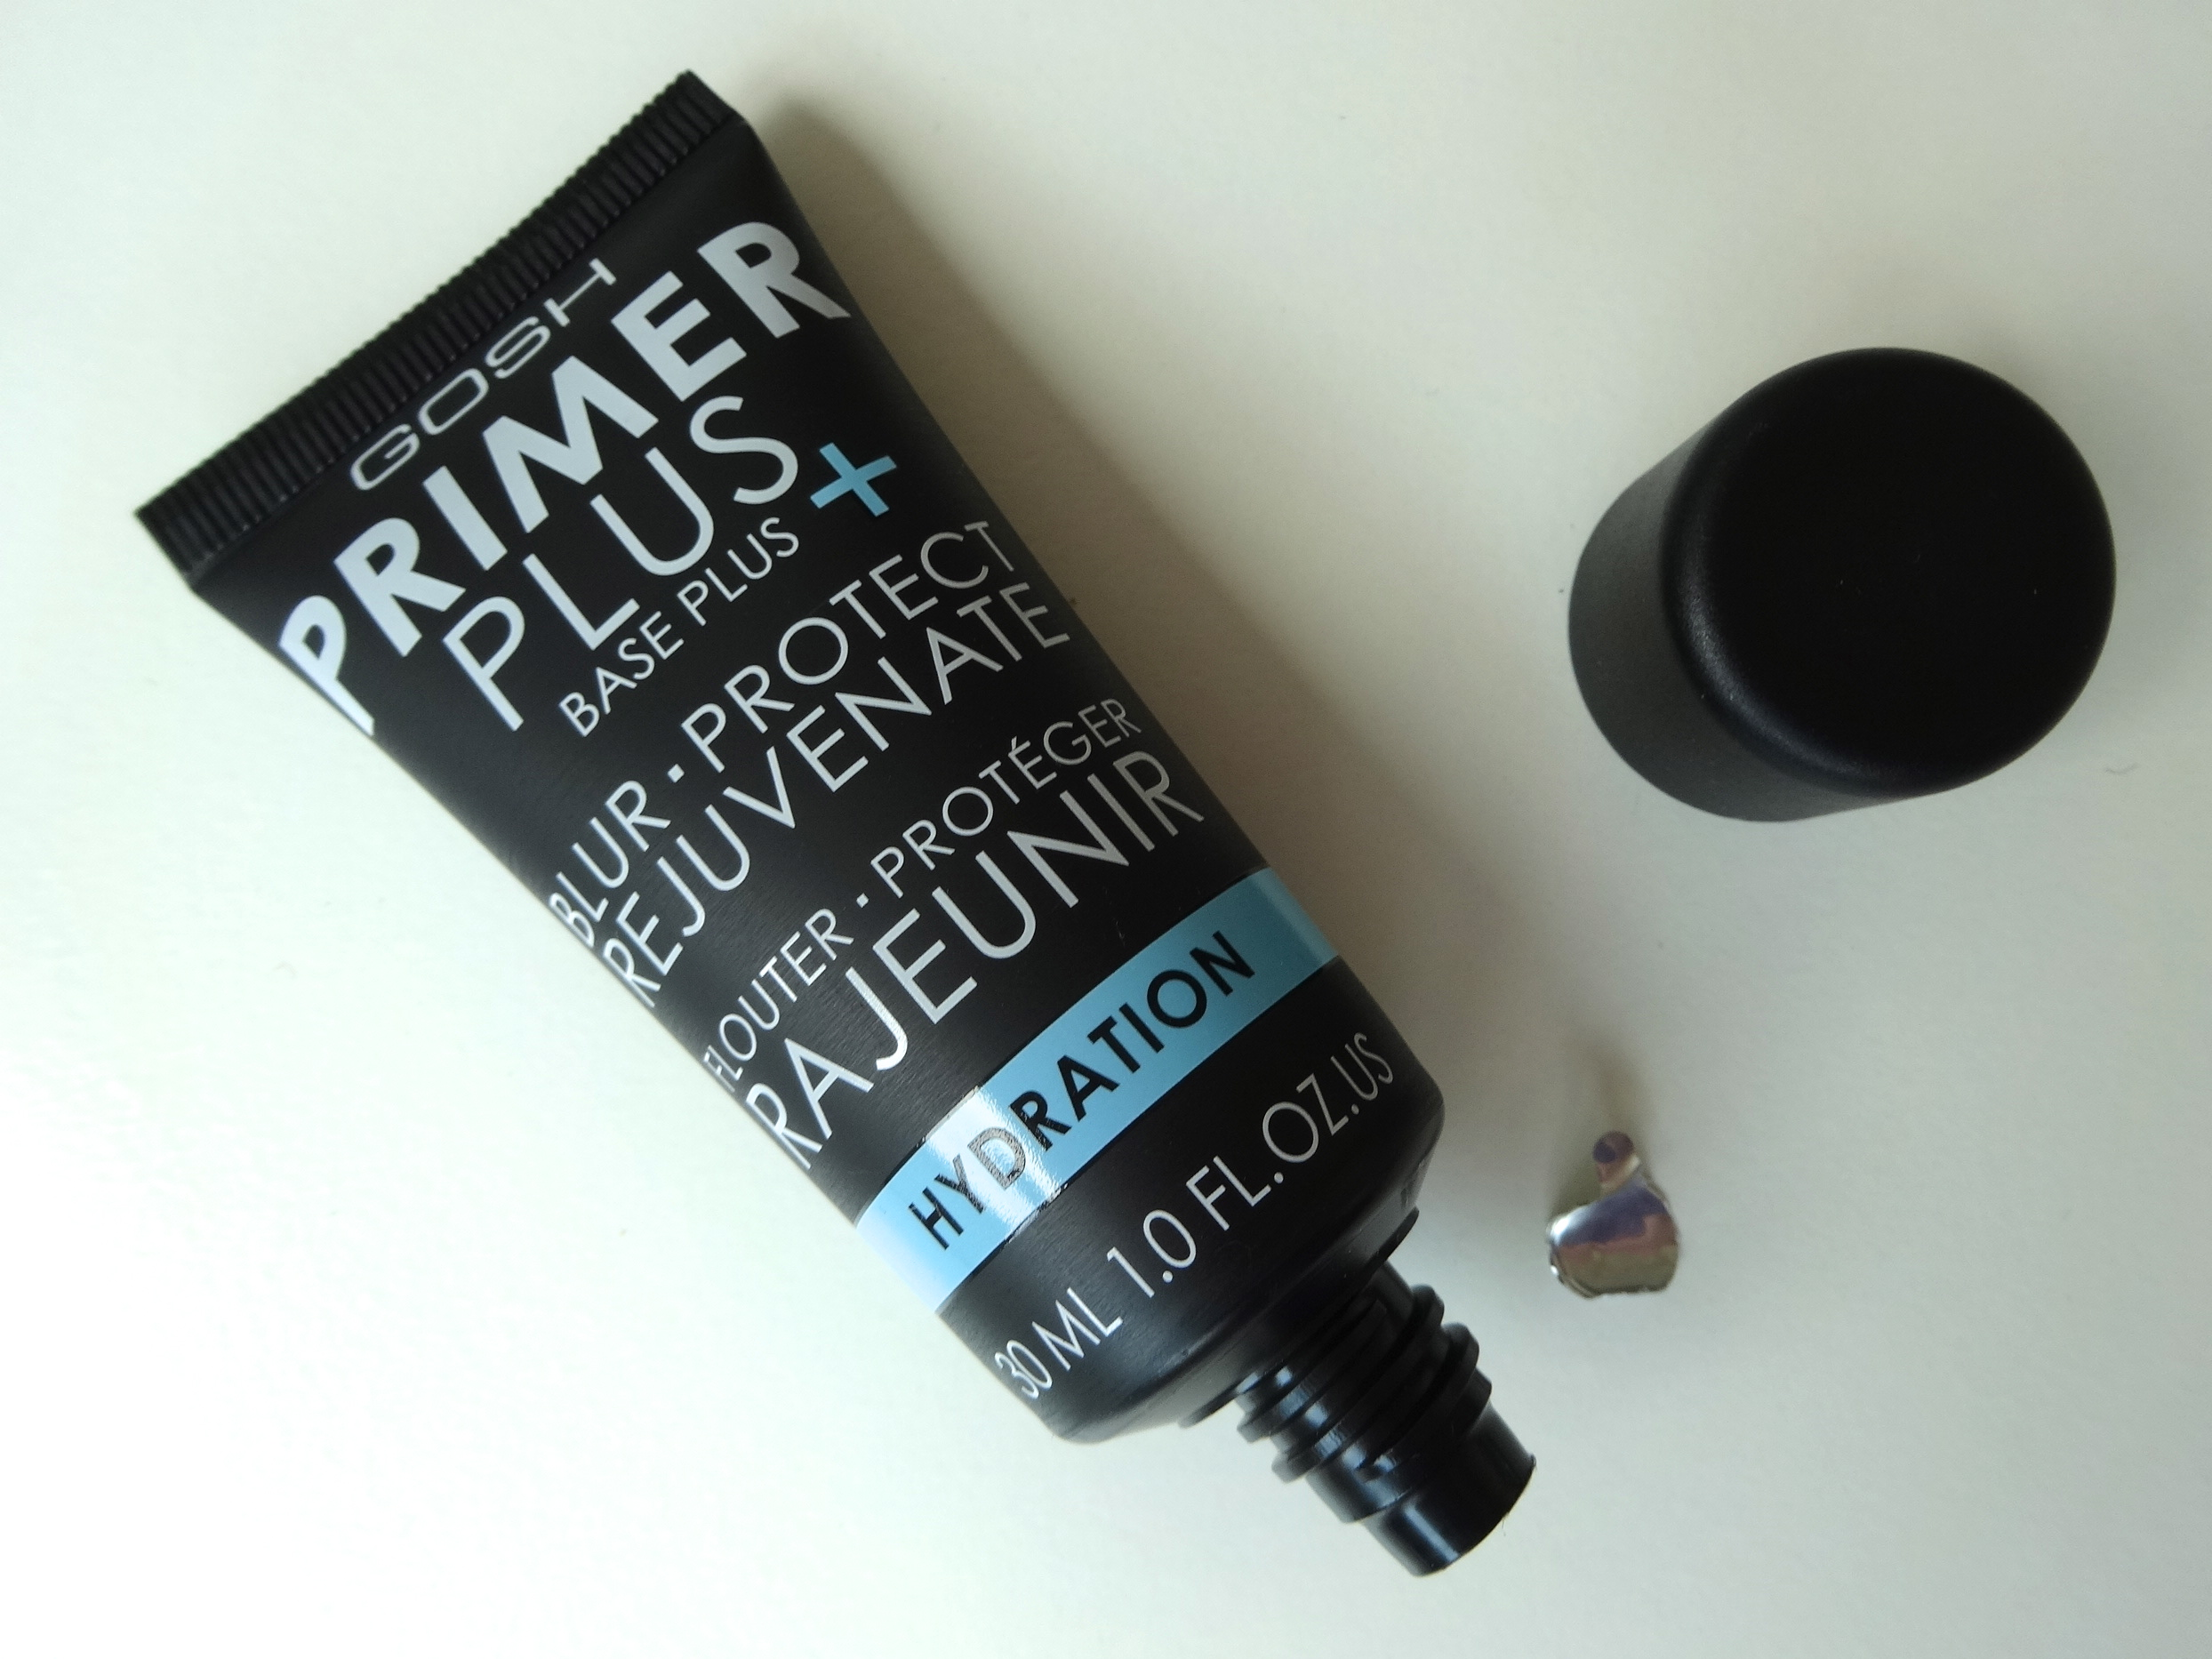 Gosh Cosmetics Primer Plus